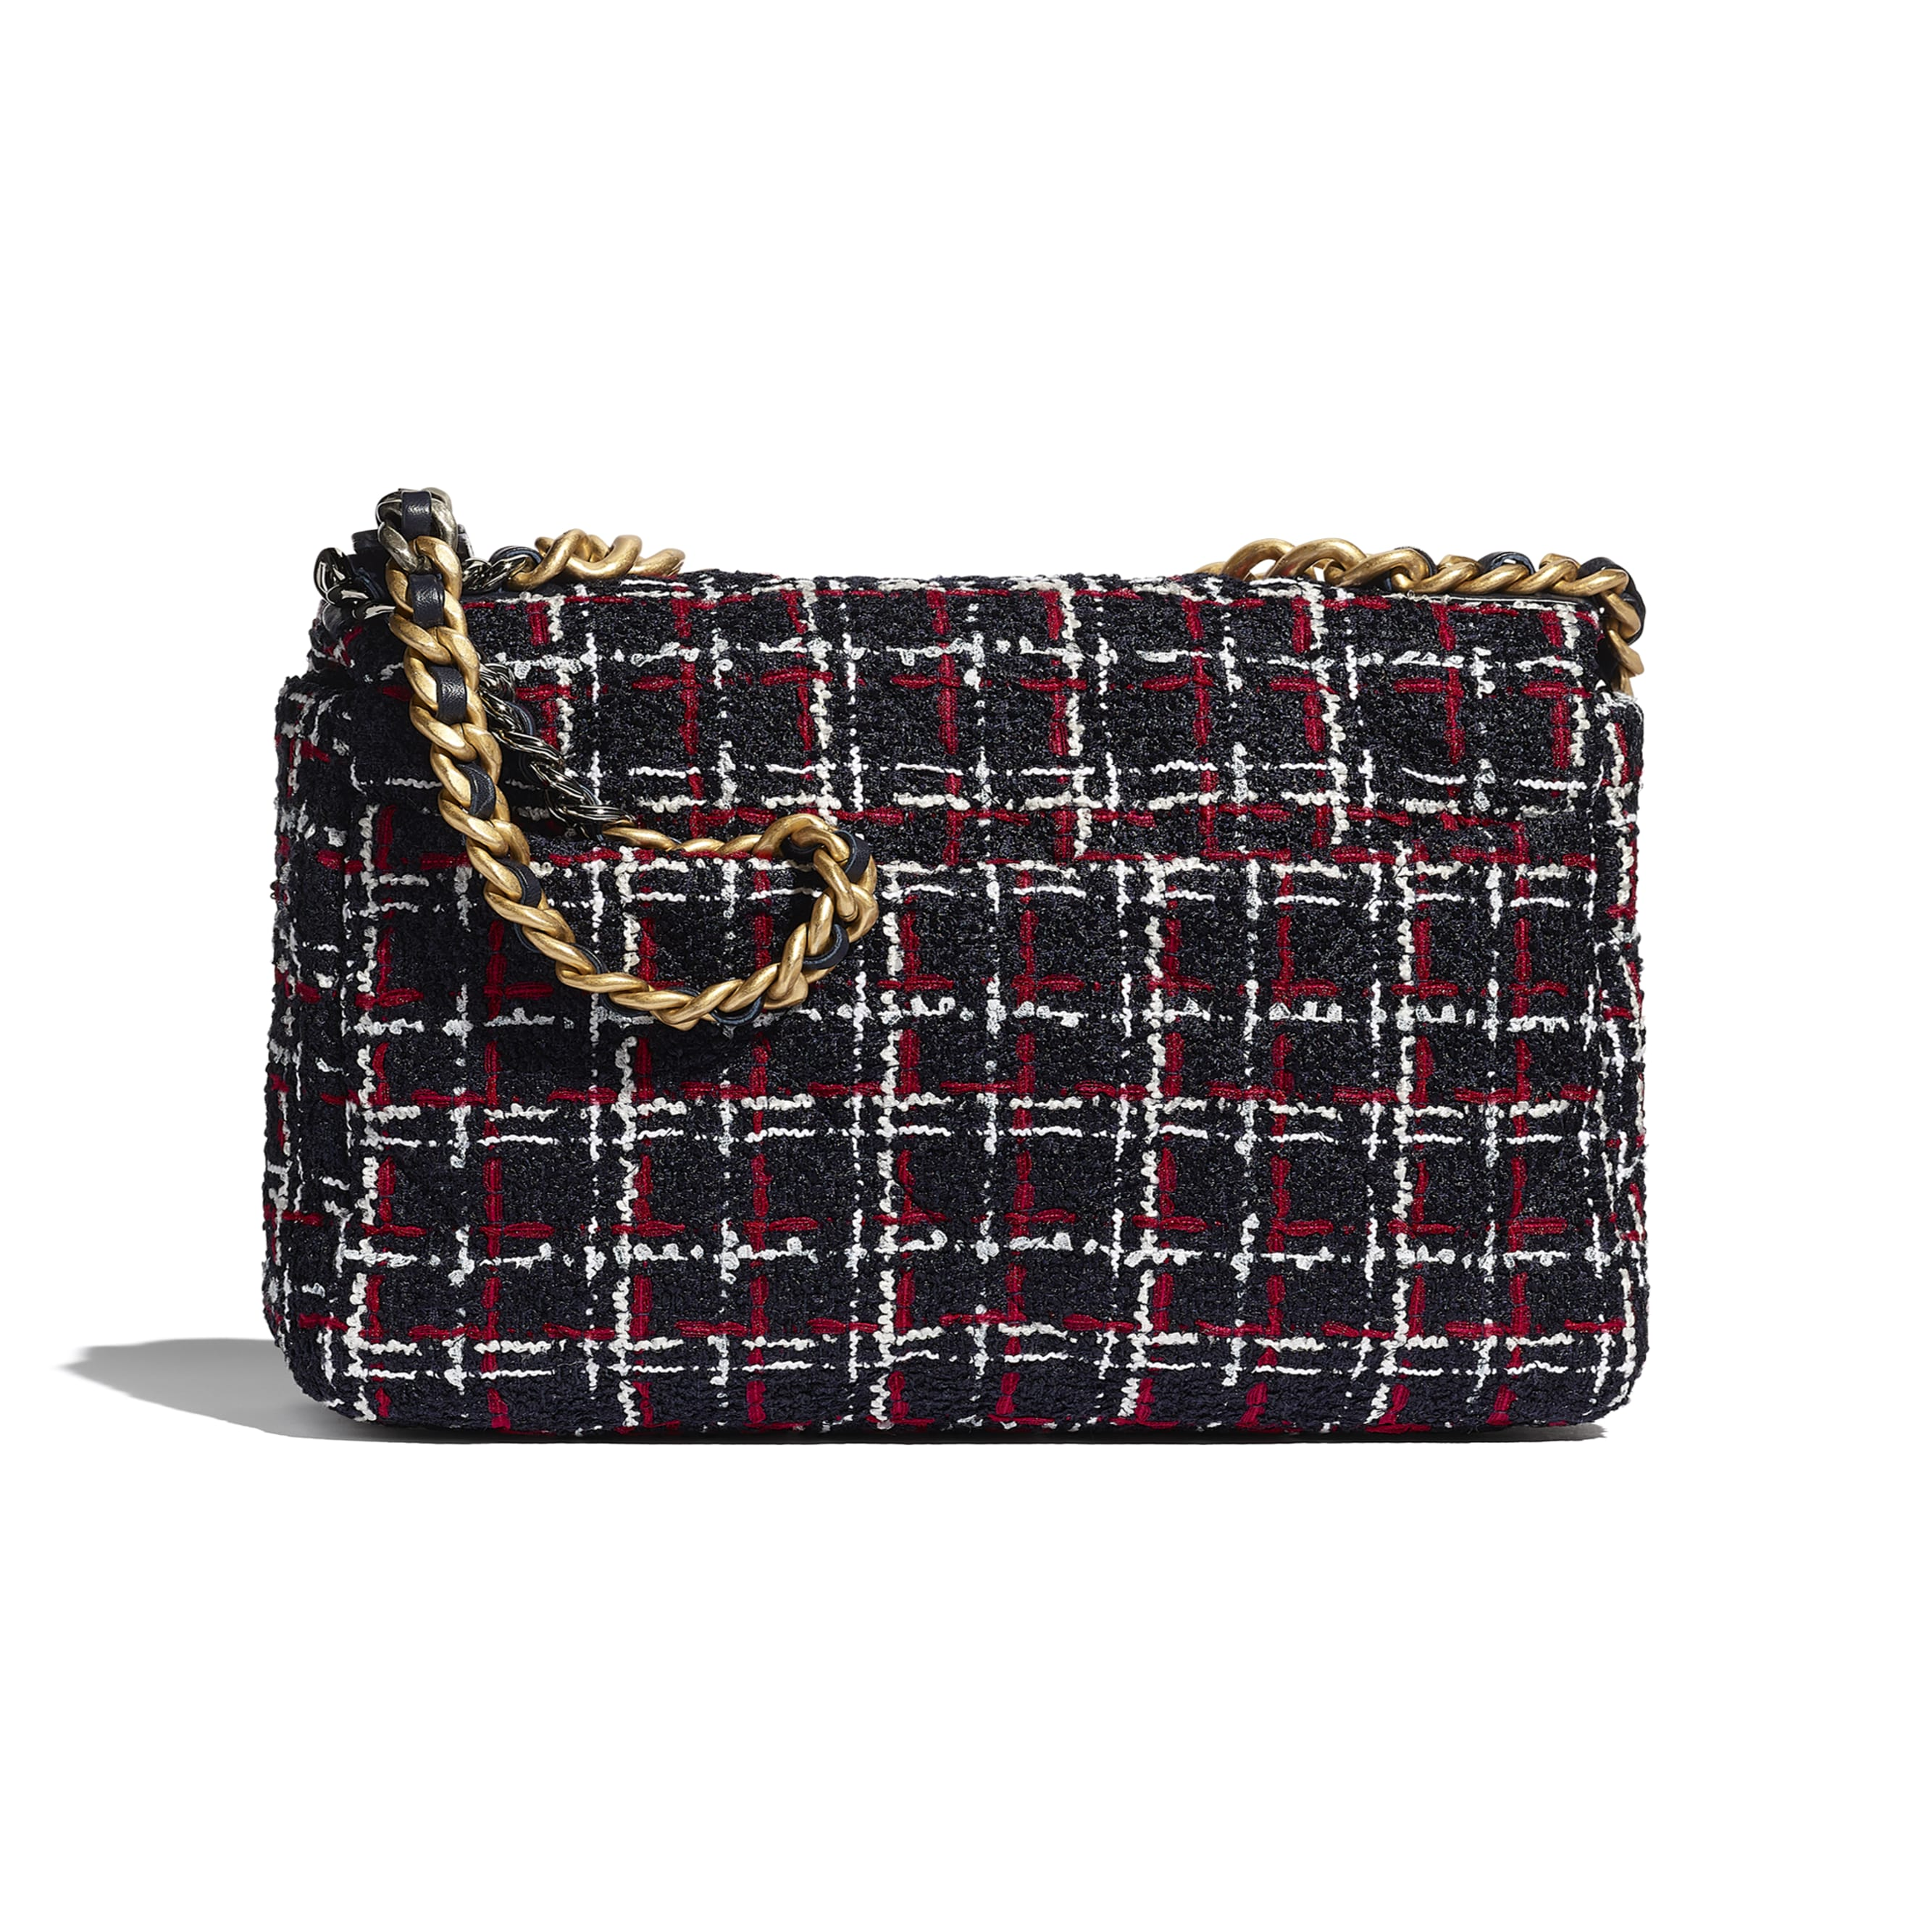 CHANEL 19 Large Flap Bag - Navy Blue, White & Red - Tweed, Gold-Tone, Silver-Tone & Ruthenium-Finish Metal - CHANEL - Alternative view - see standard sized version